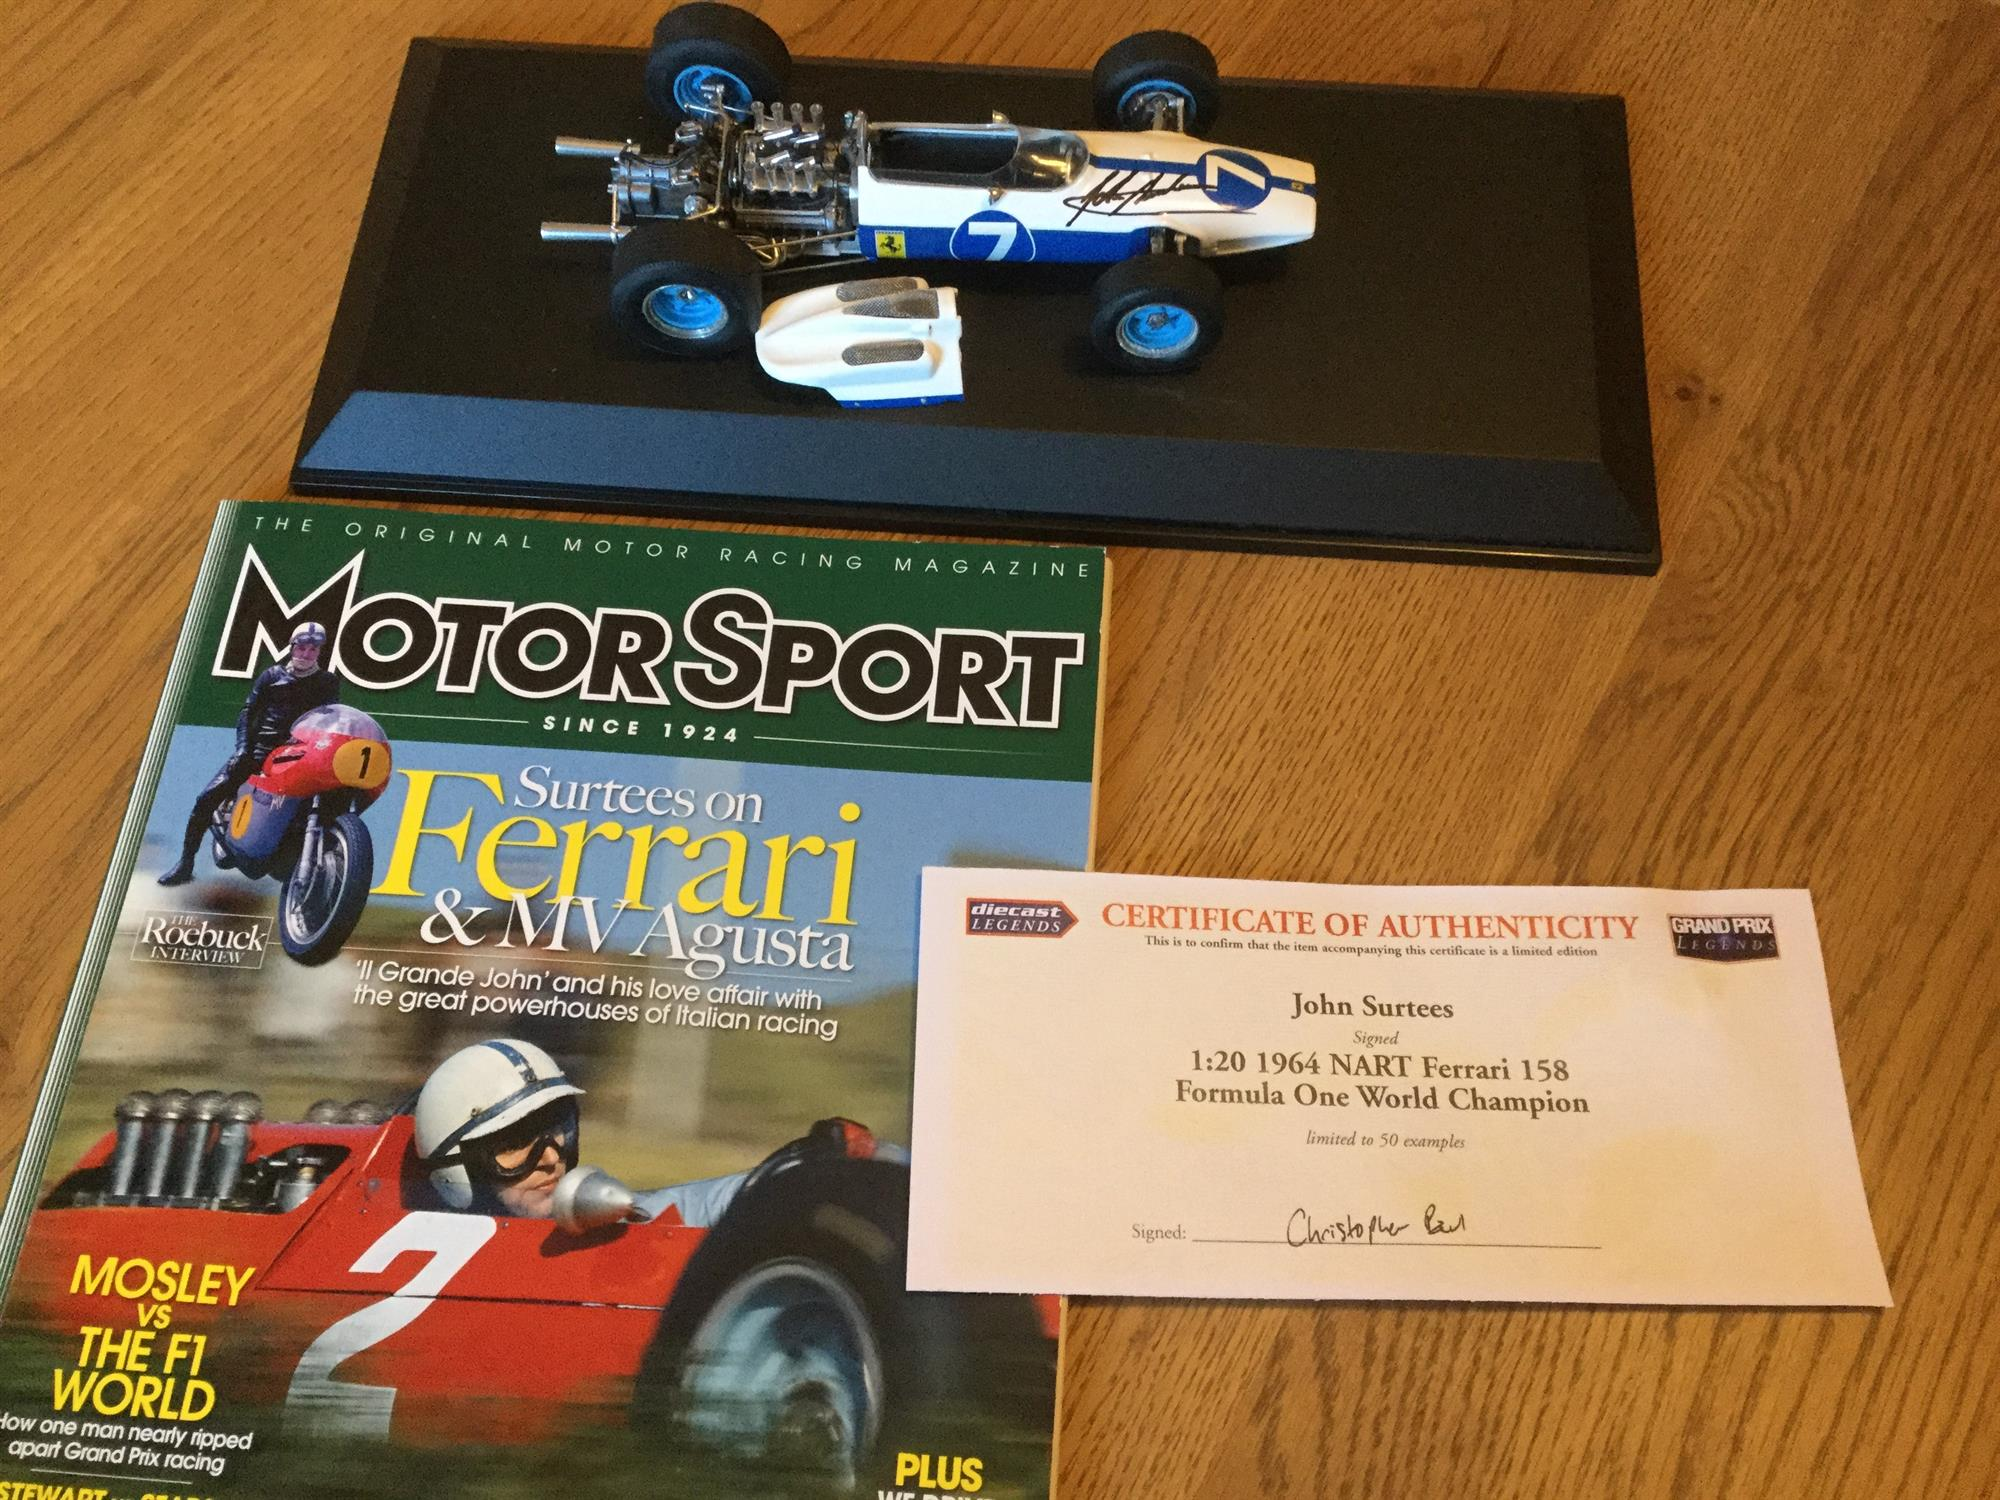 Superb John Surtees Tribute Collection of Models and Memorabilia - Image 4 of 8